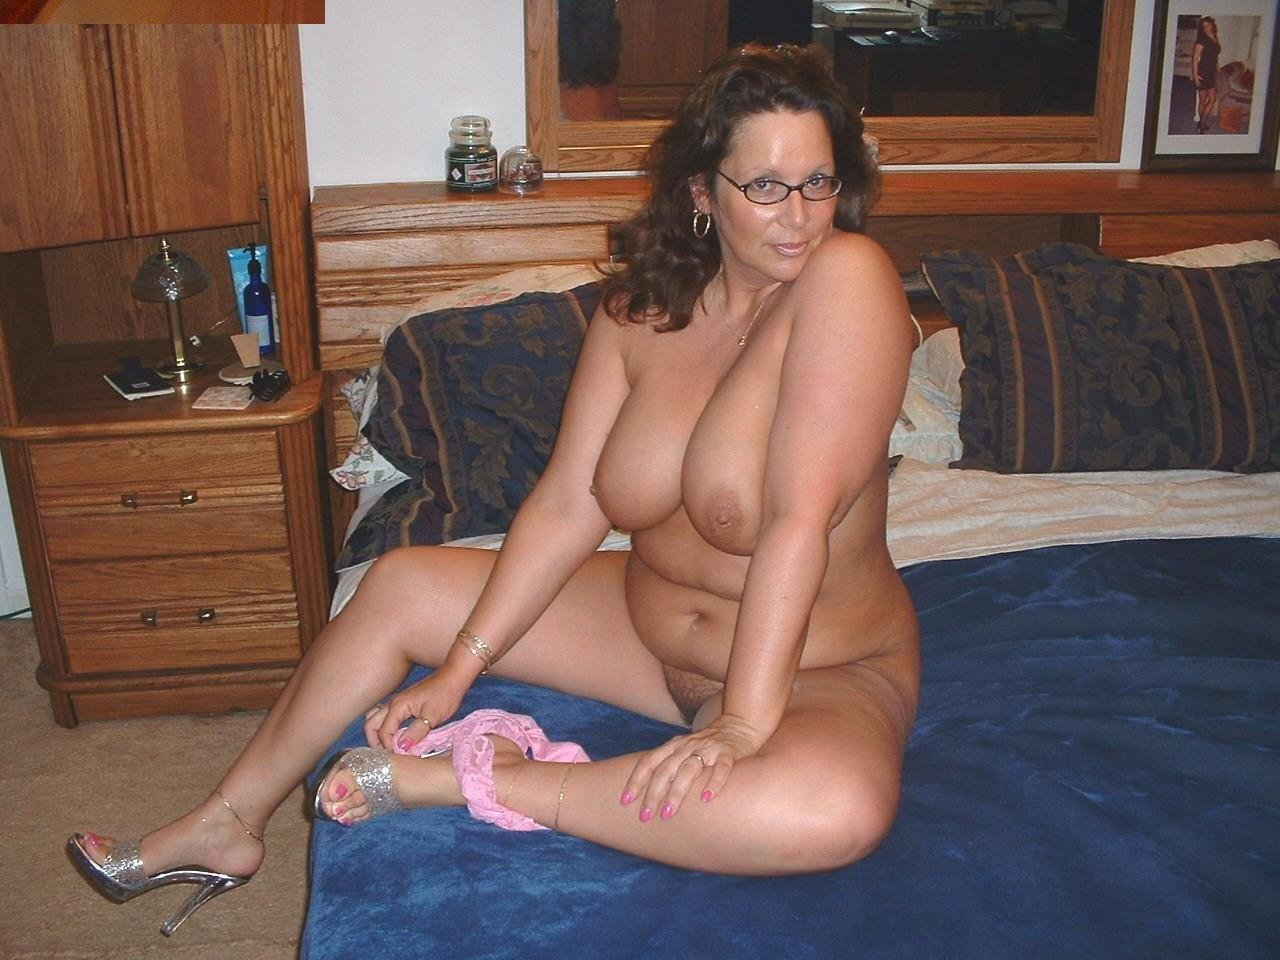 My girlfriends hotmom